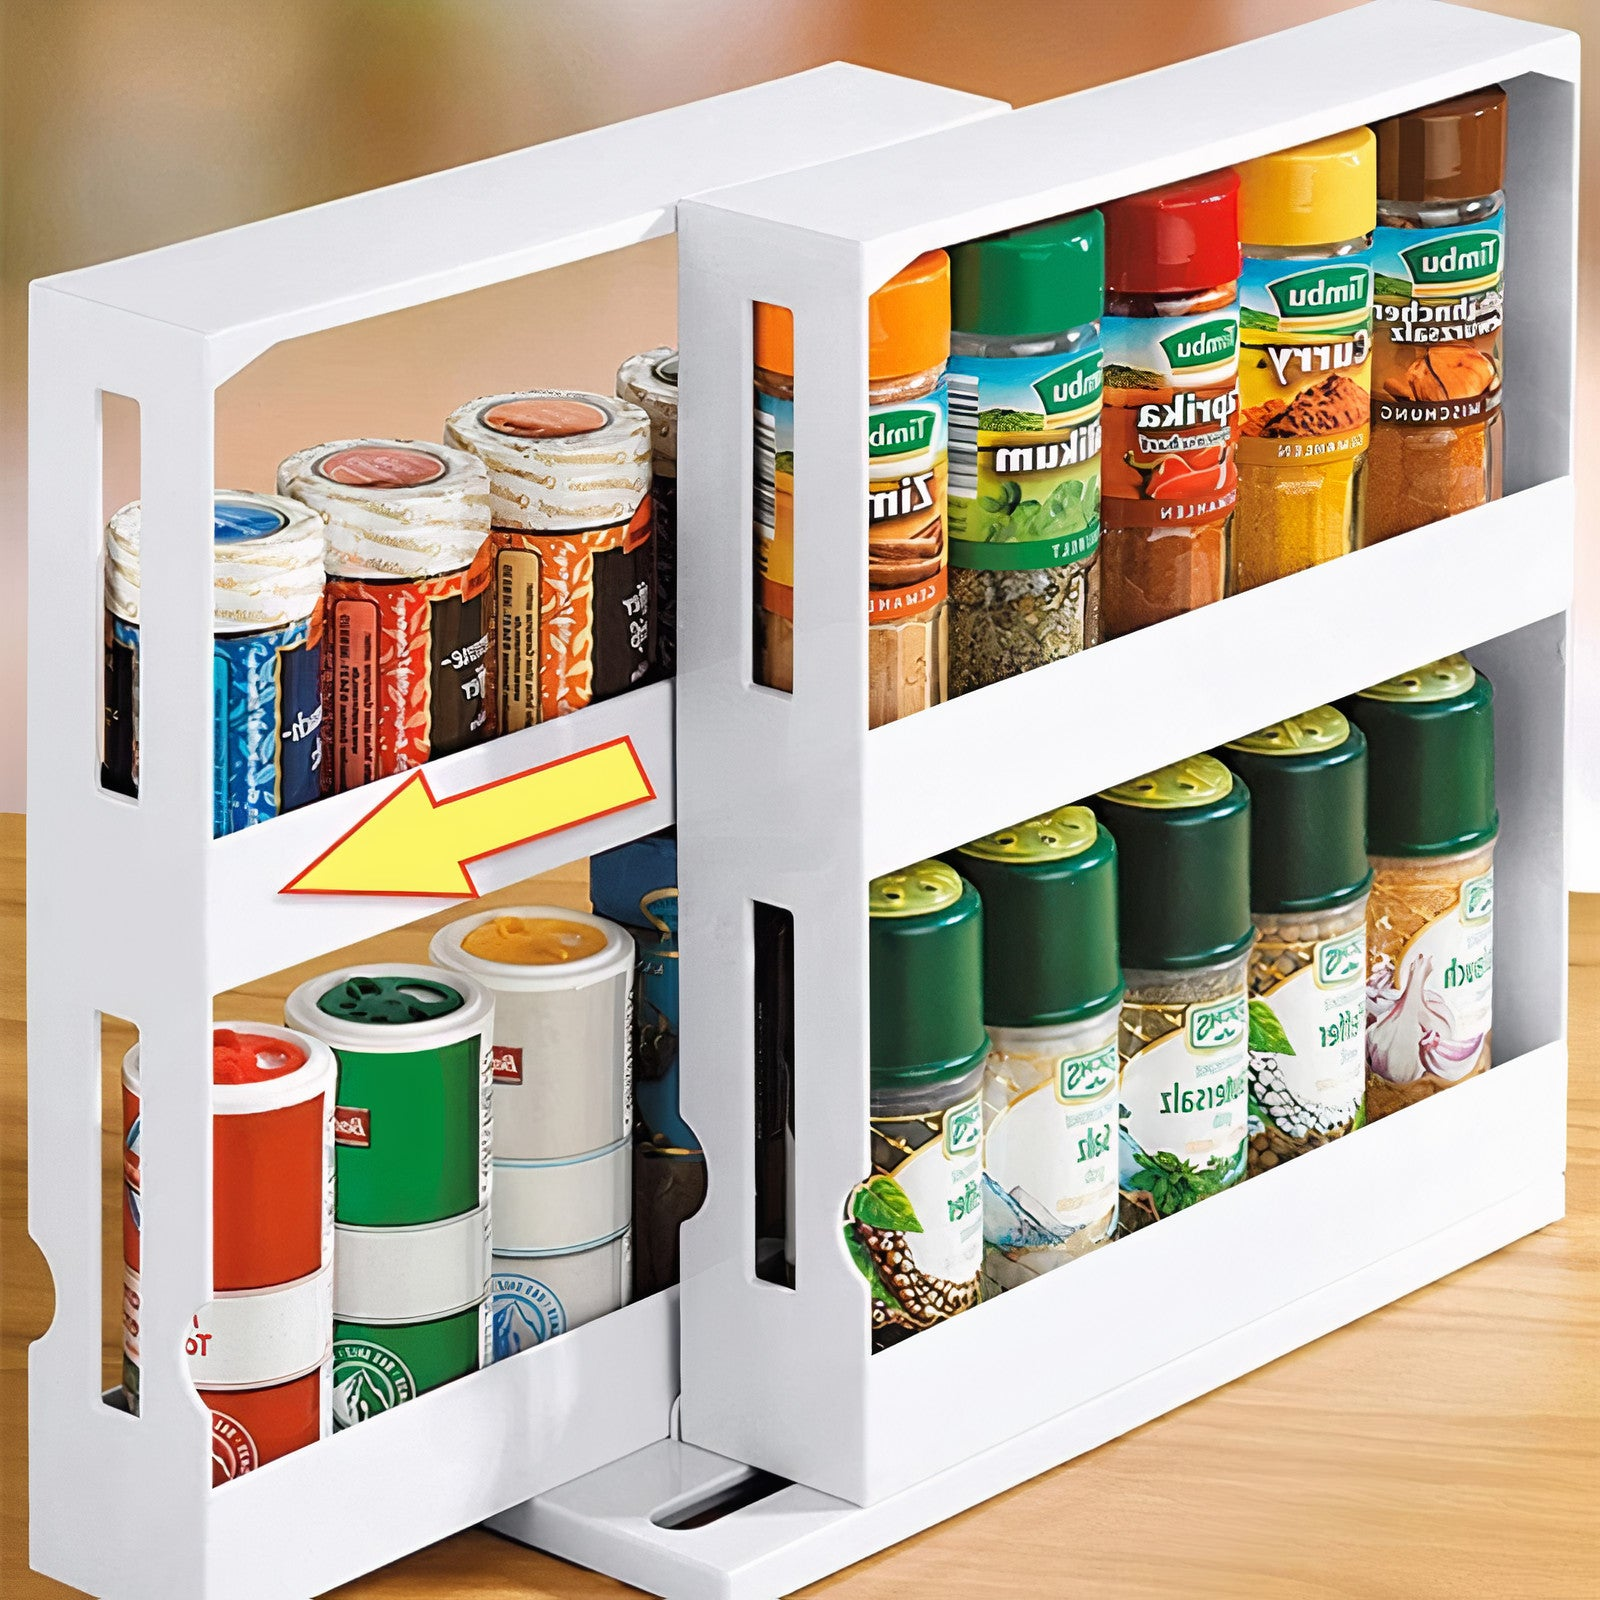 Sliding & Rotating Spice Drawer